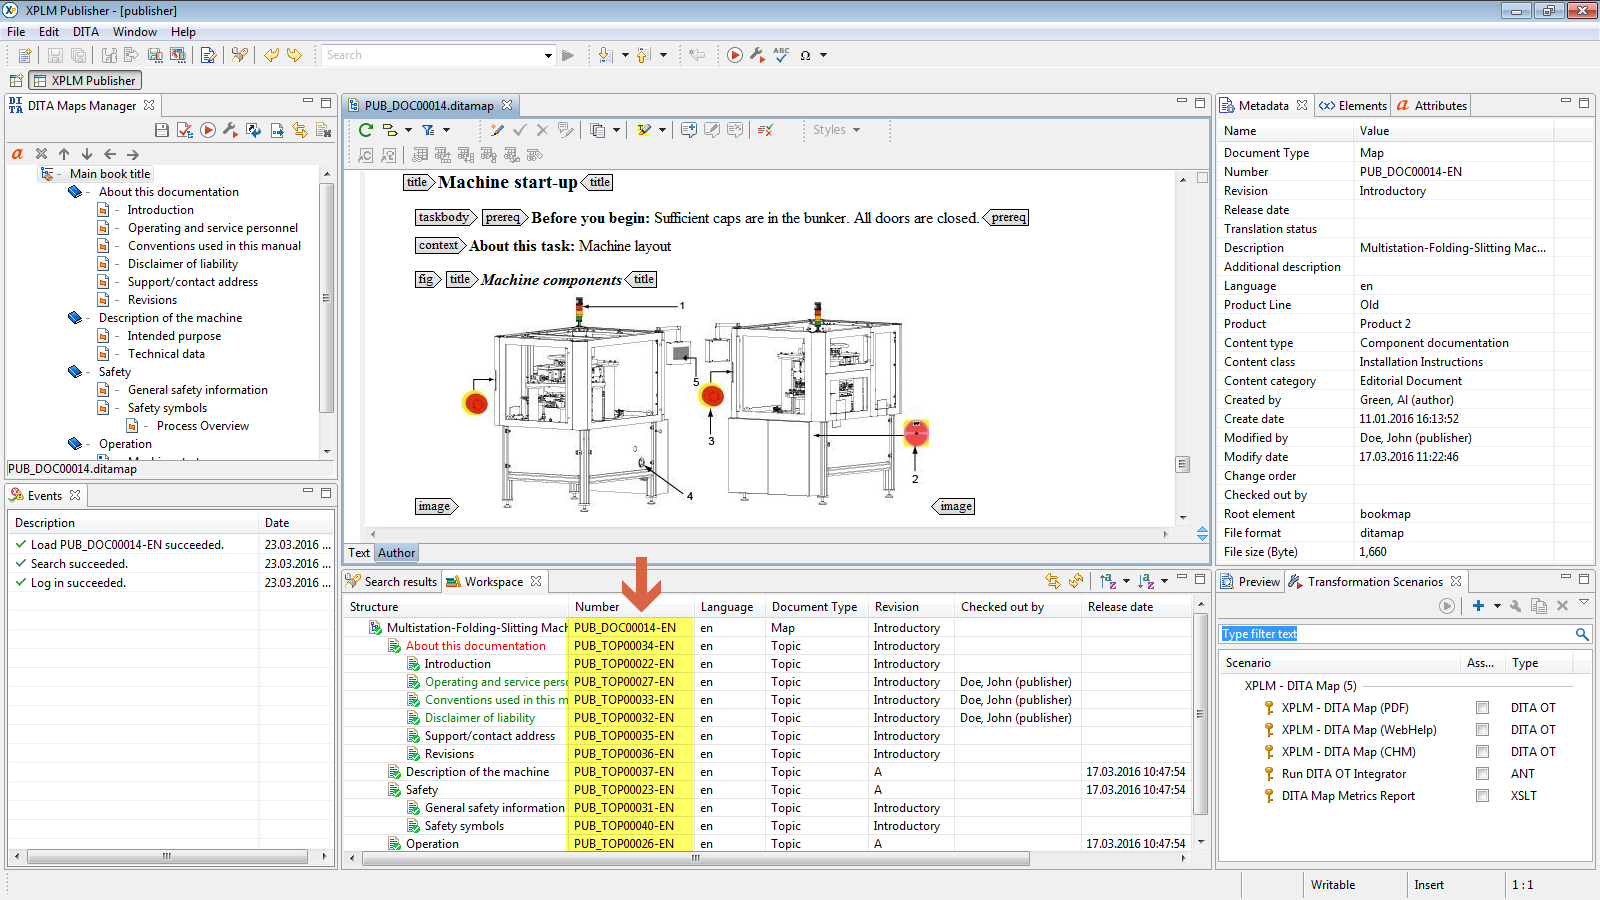 XPLM · Integration with Oracle Agile PLM